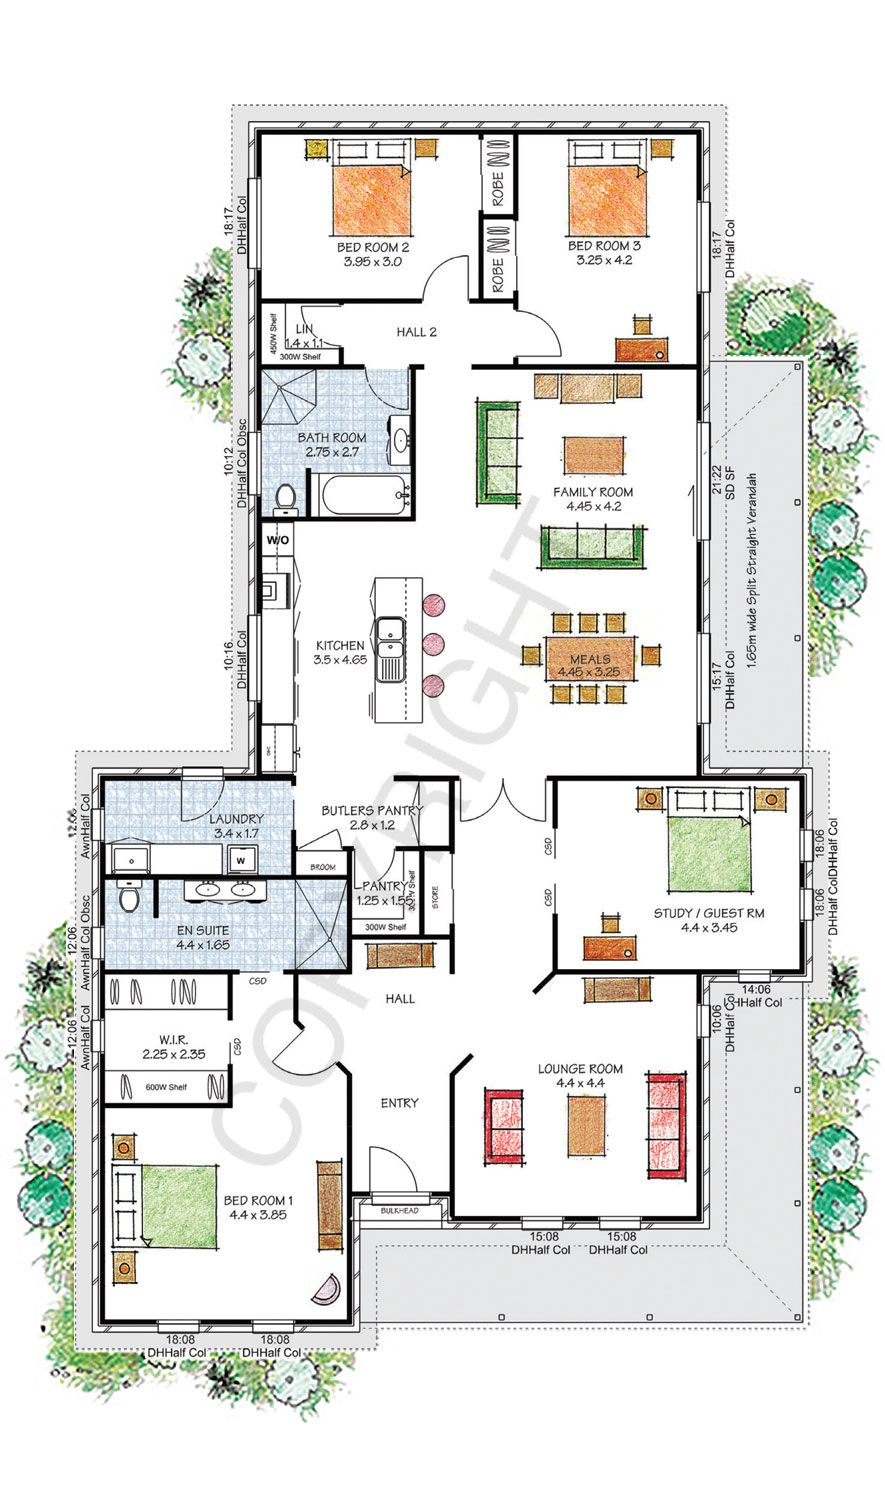 4 Bed Study Great Ensuite And Wip Have To Build A Granny Flat Garage 252sqm 148000 Full Kit Floor Plans Kit Homes House Plans